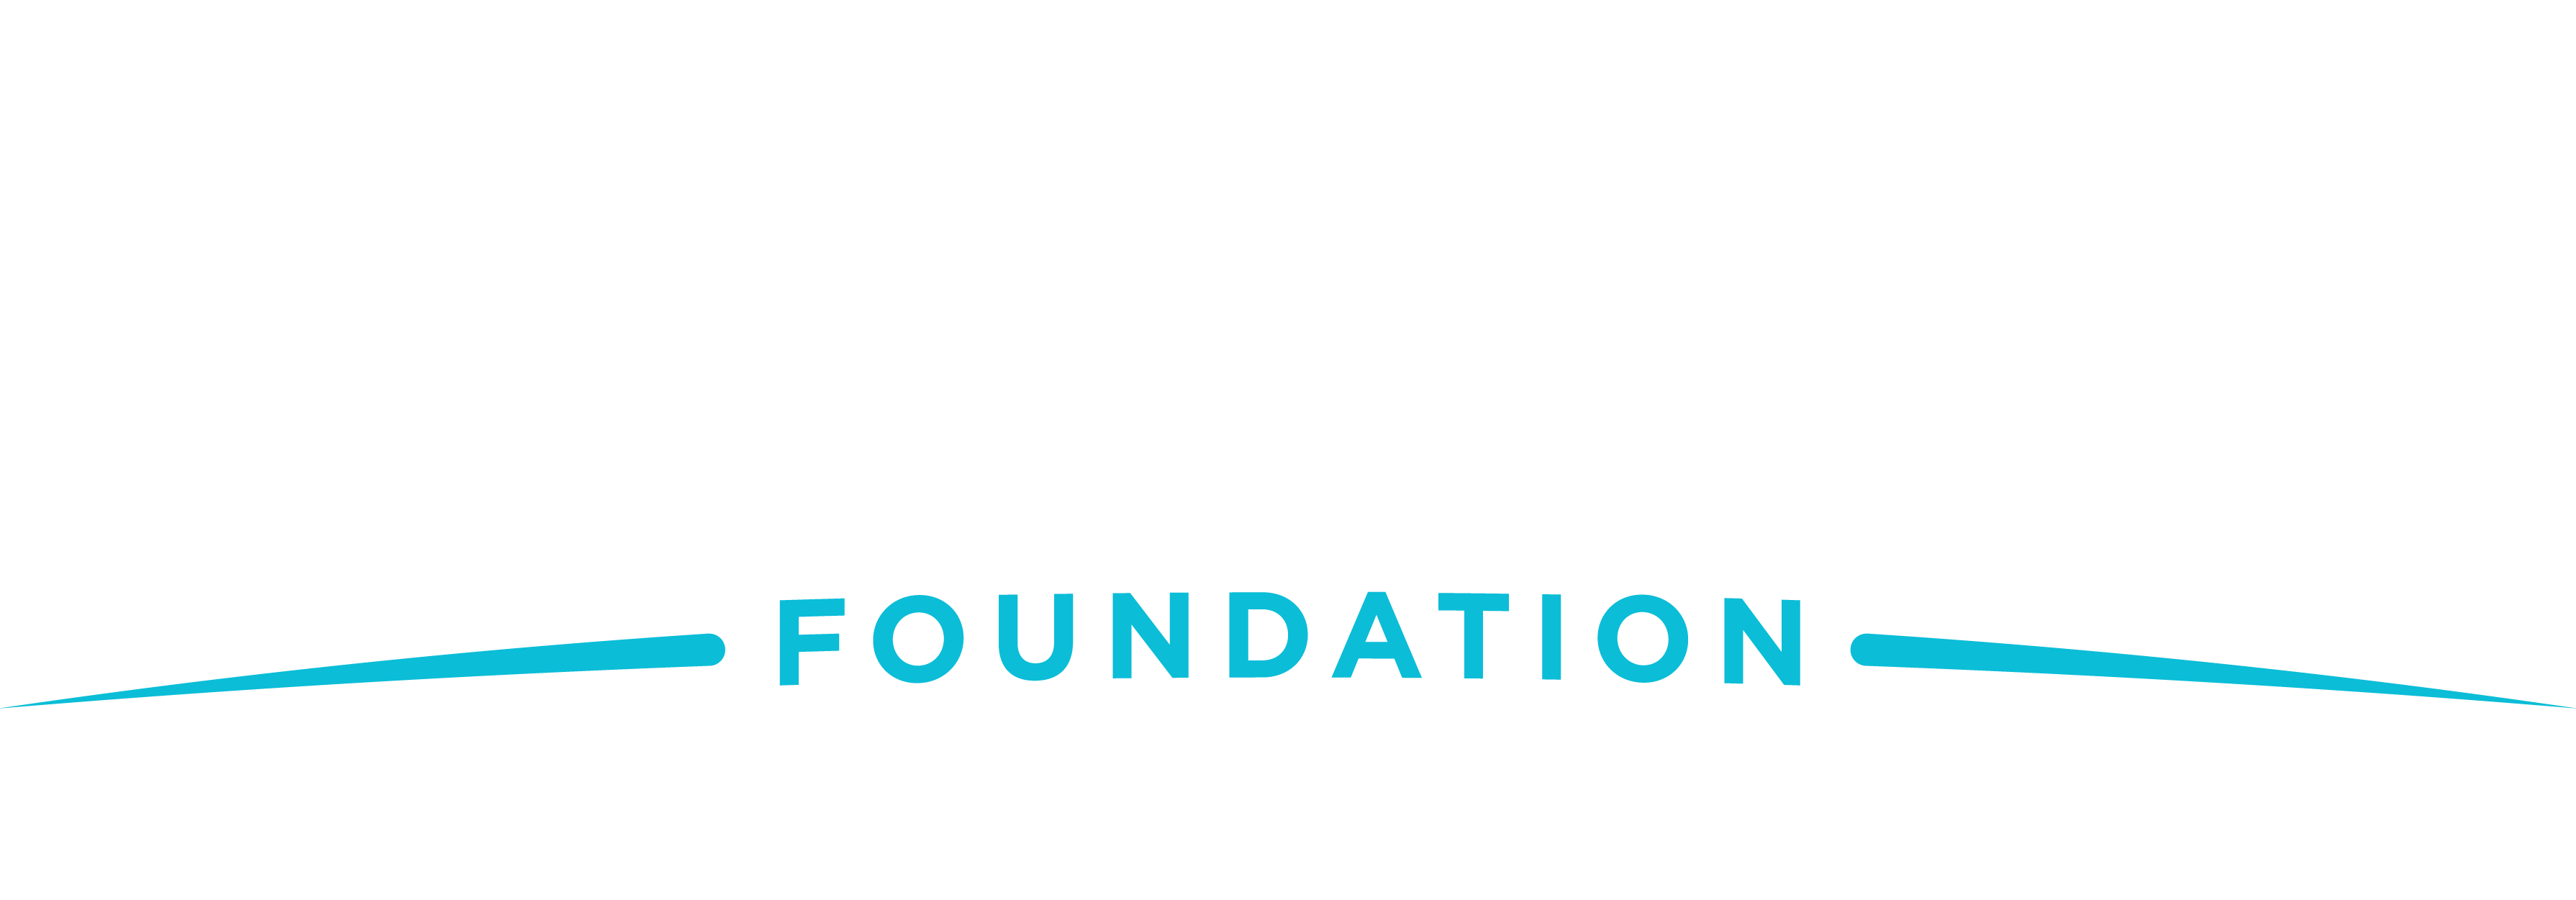 Homeschool Iowa GenJ iObject Sponsor: Americans for Prosperity Foundation Iowa